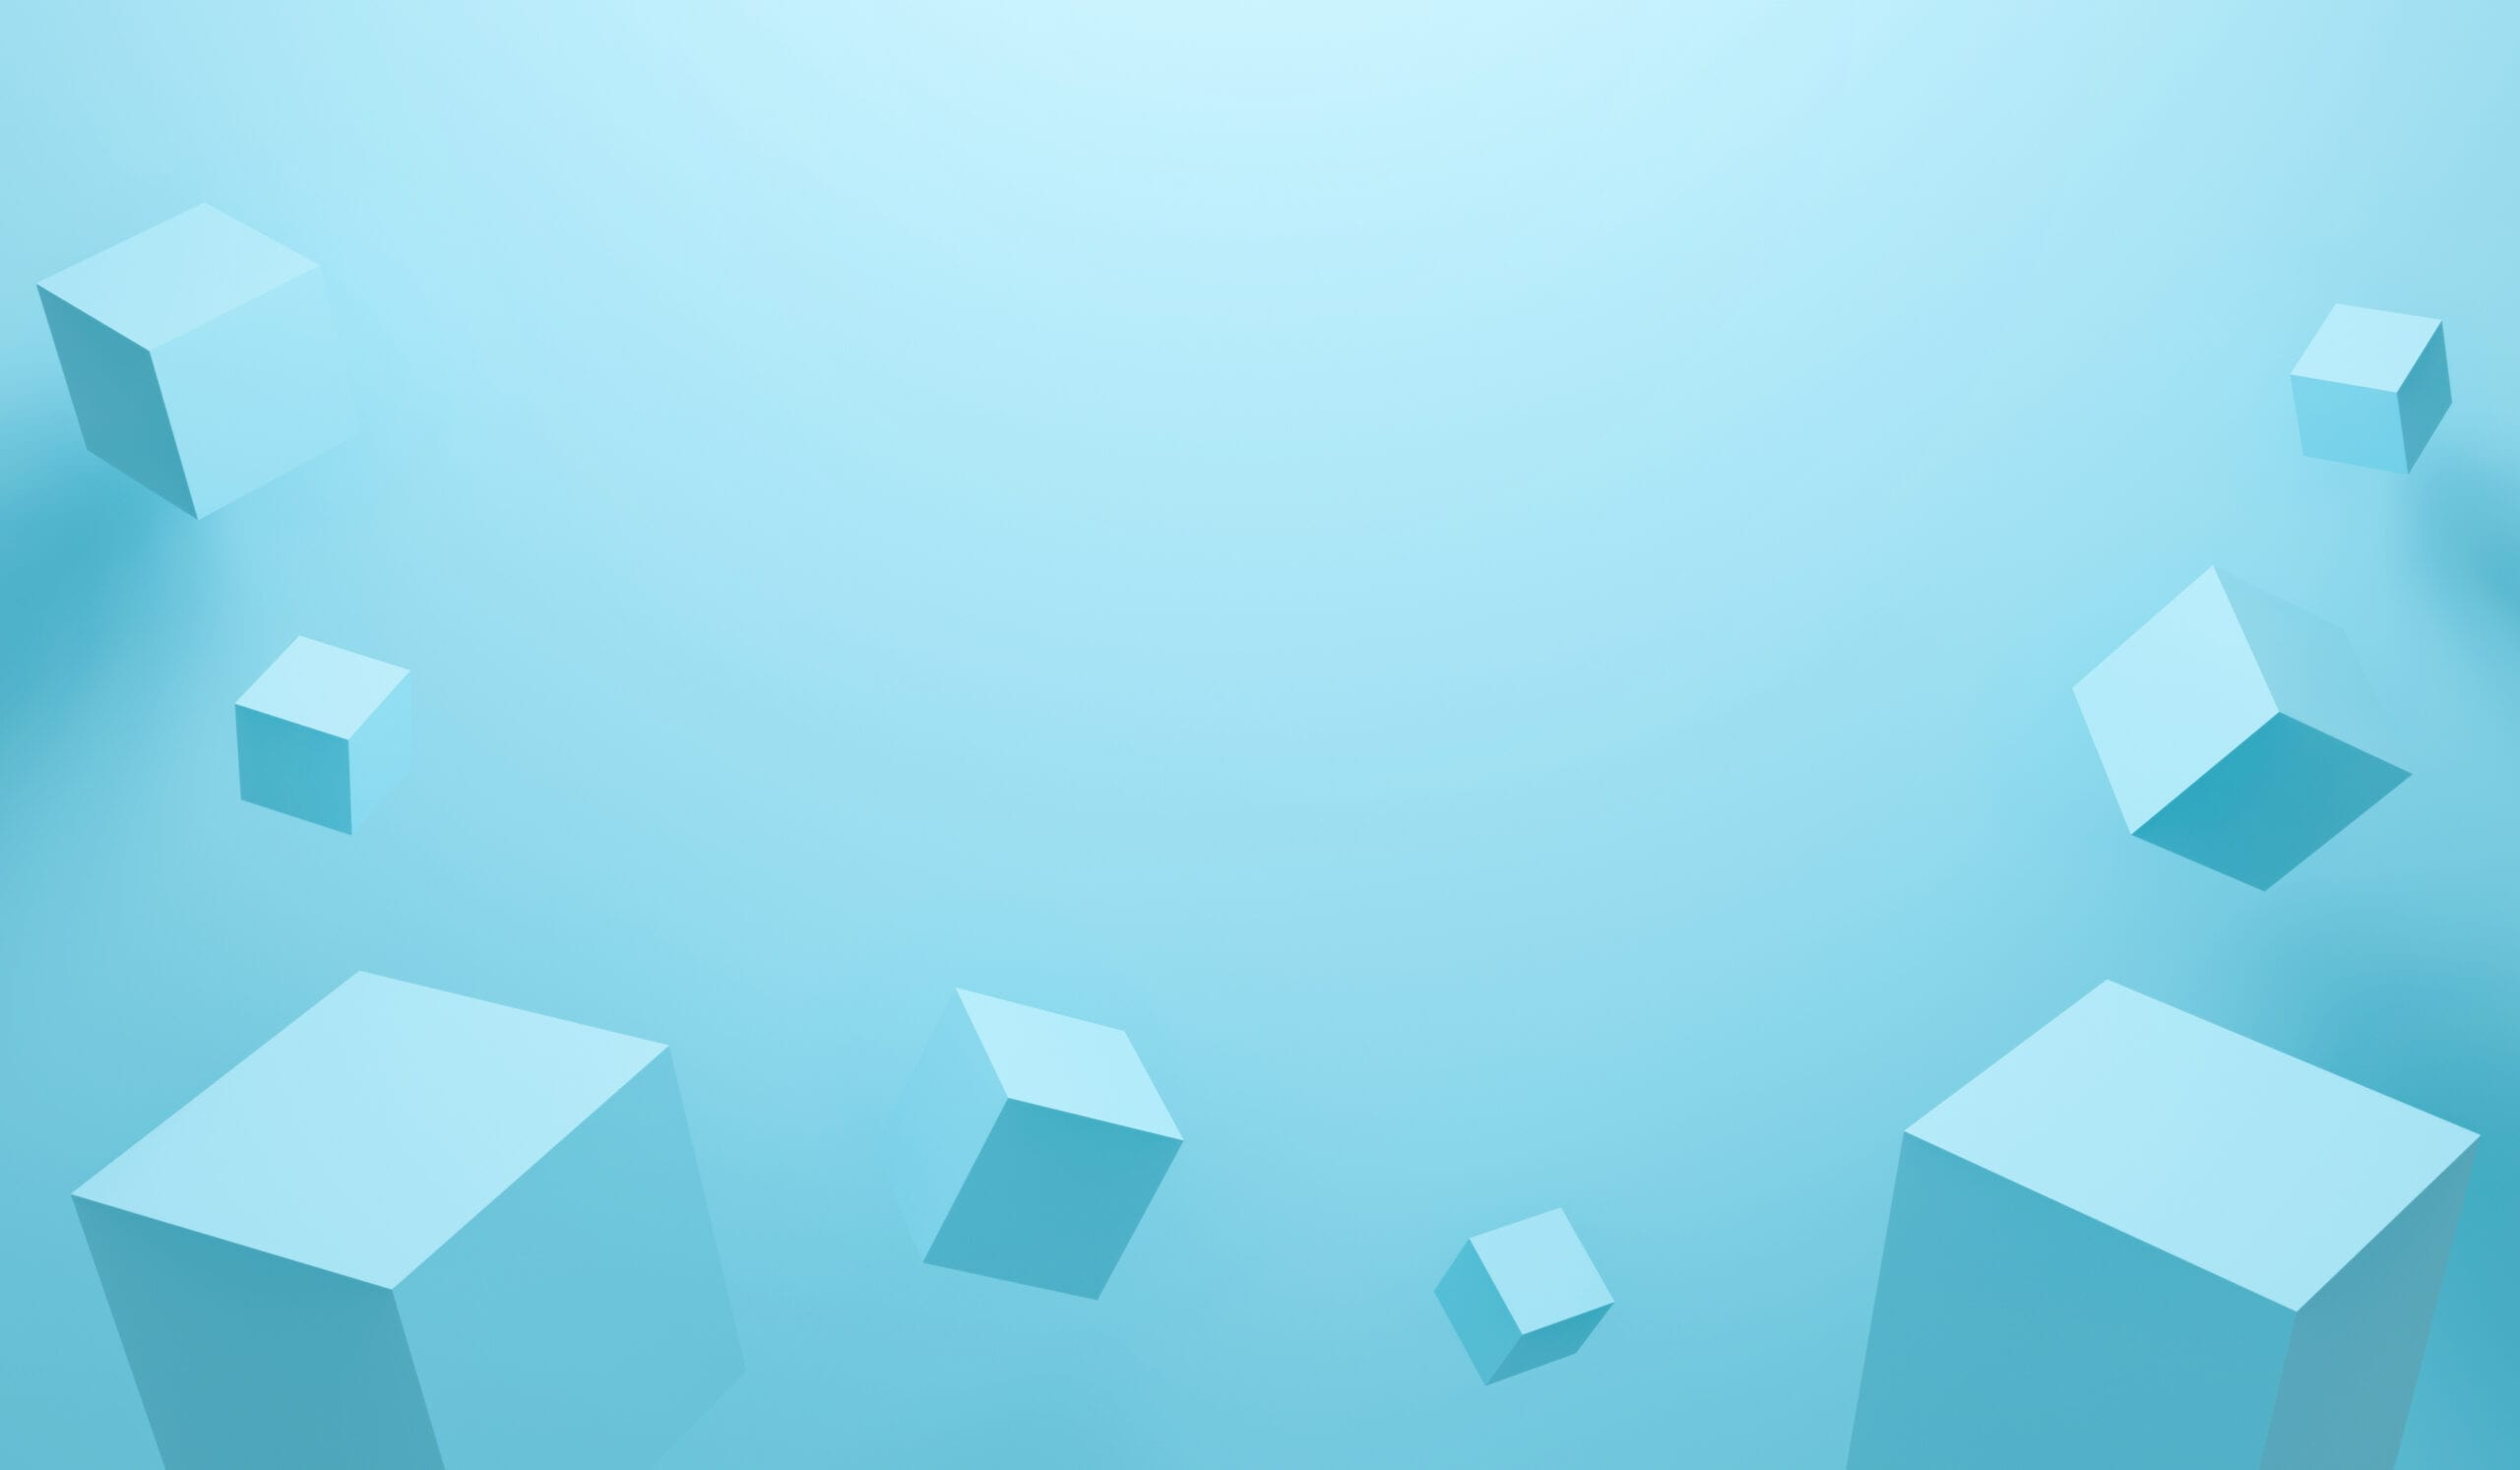 Abstract _3d_cubes_background